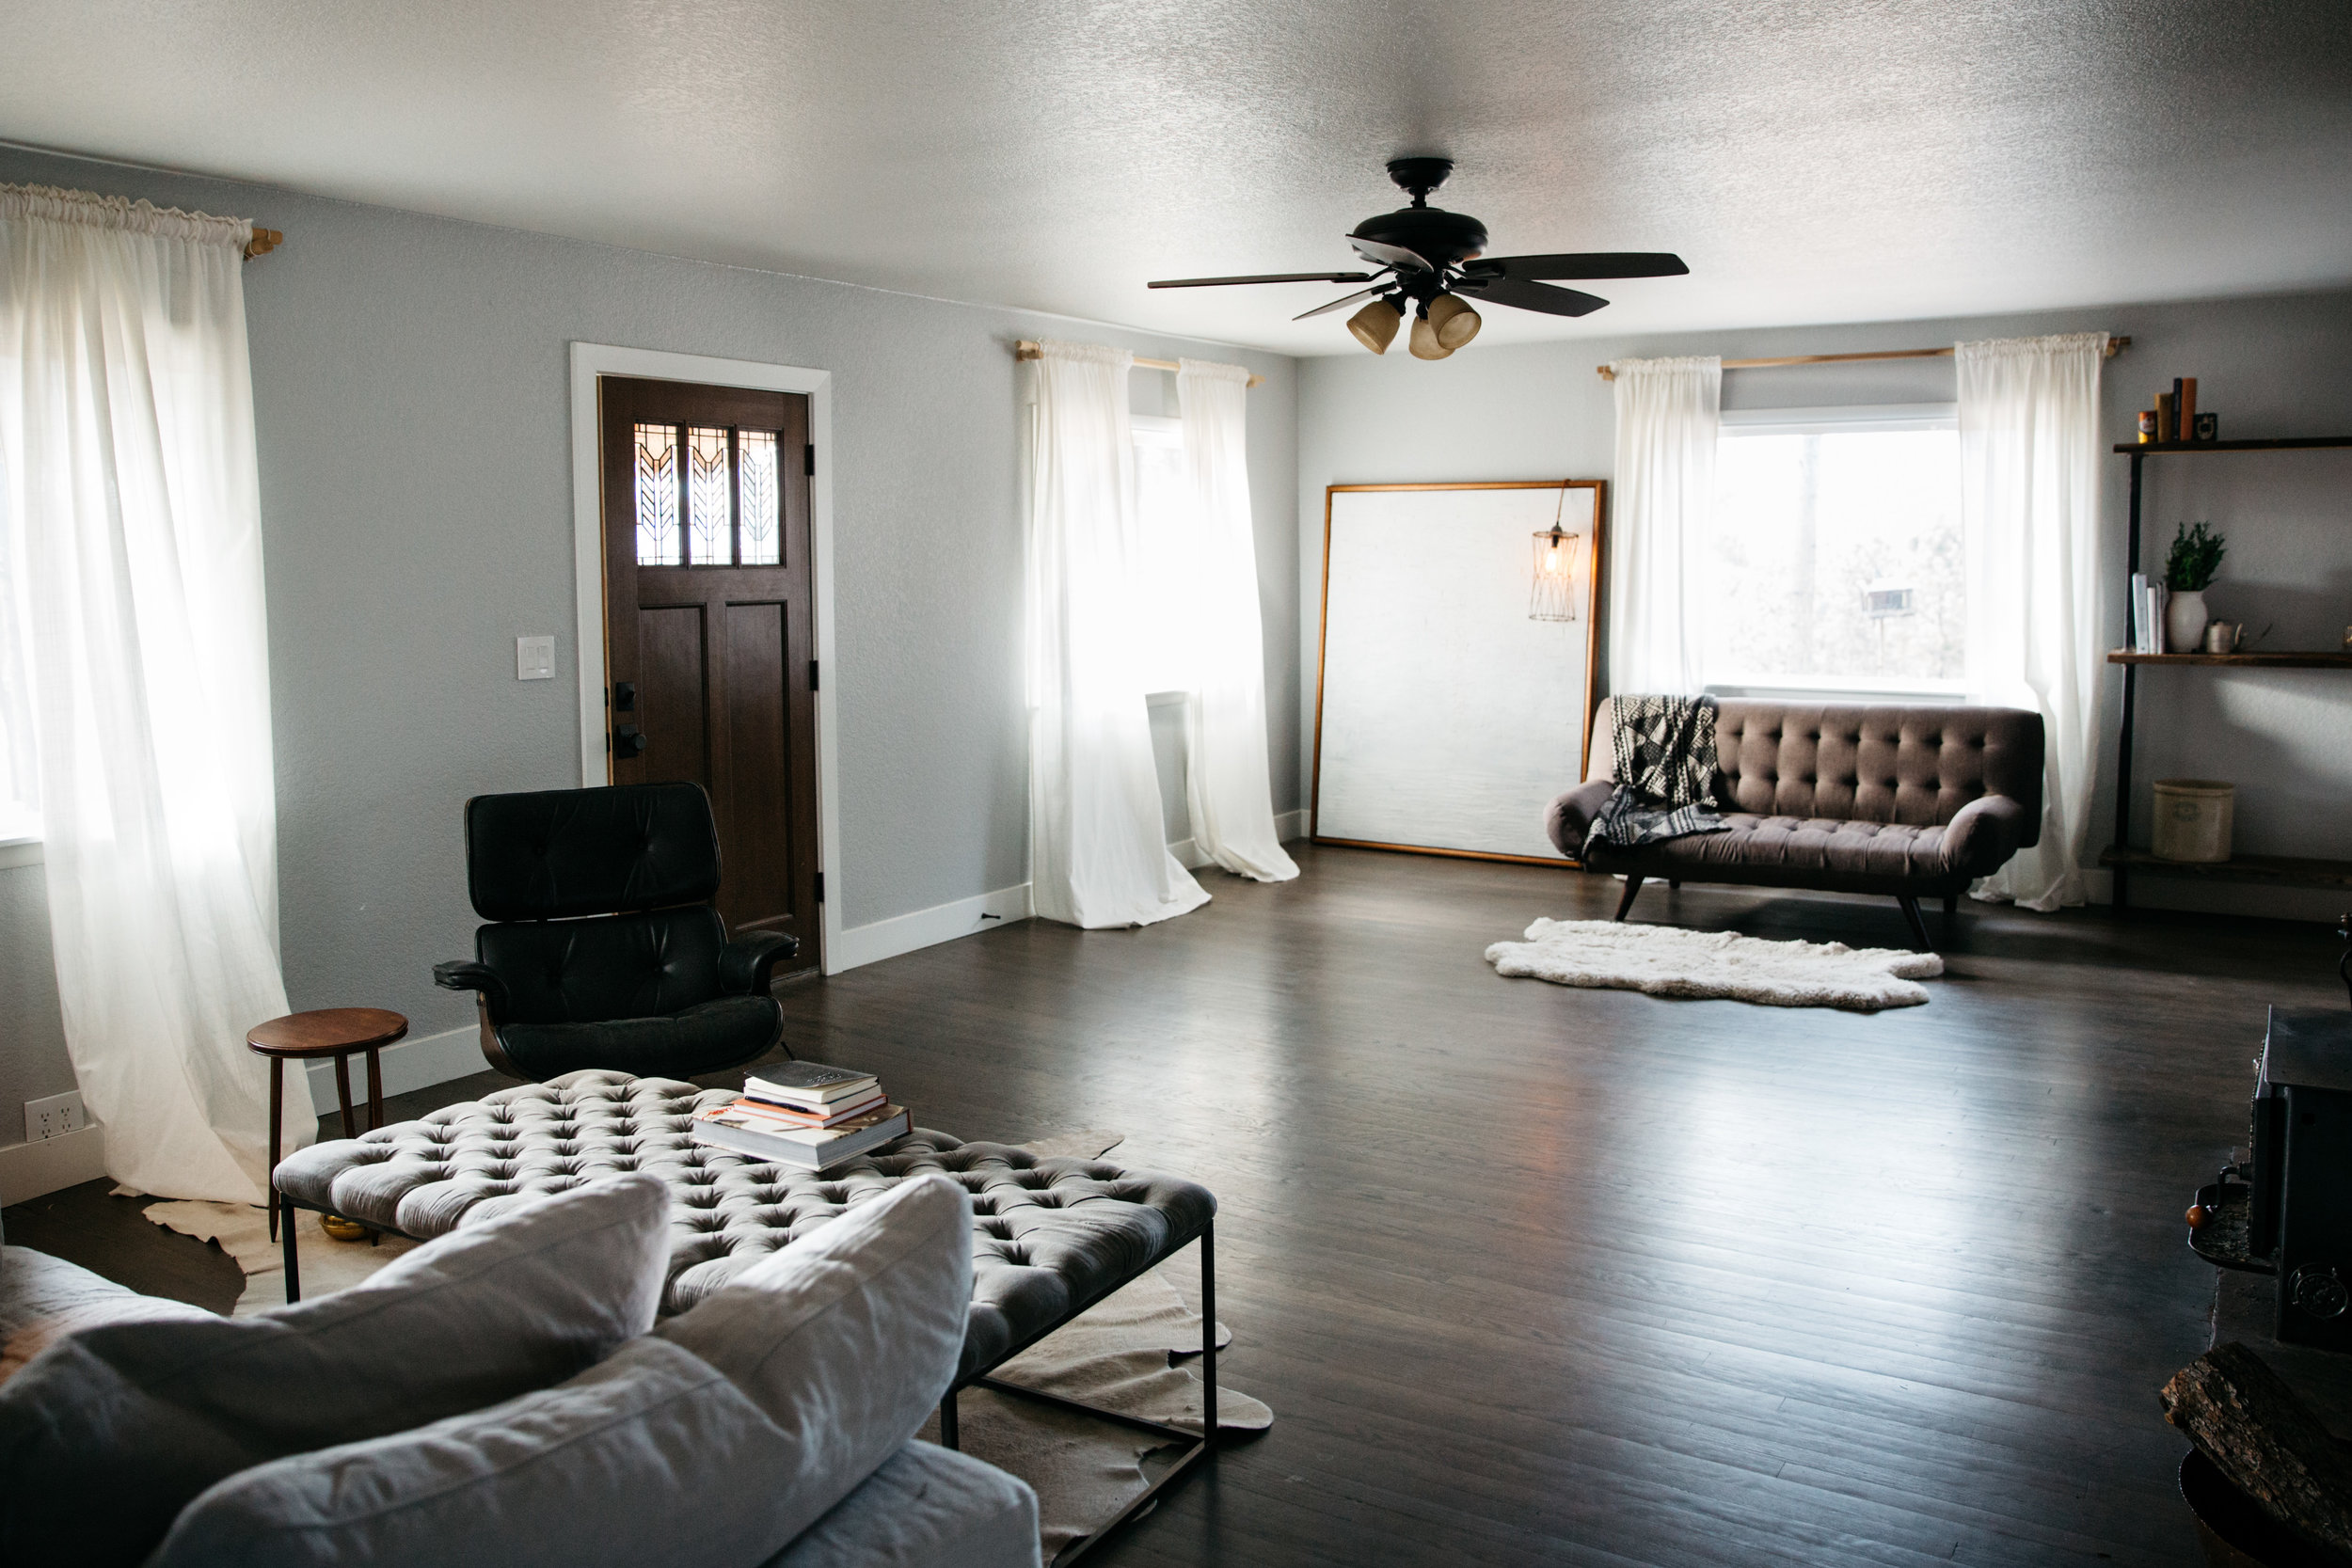 mitchell-living-room-after-5.jpg